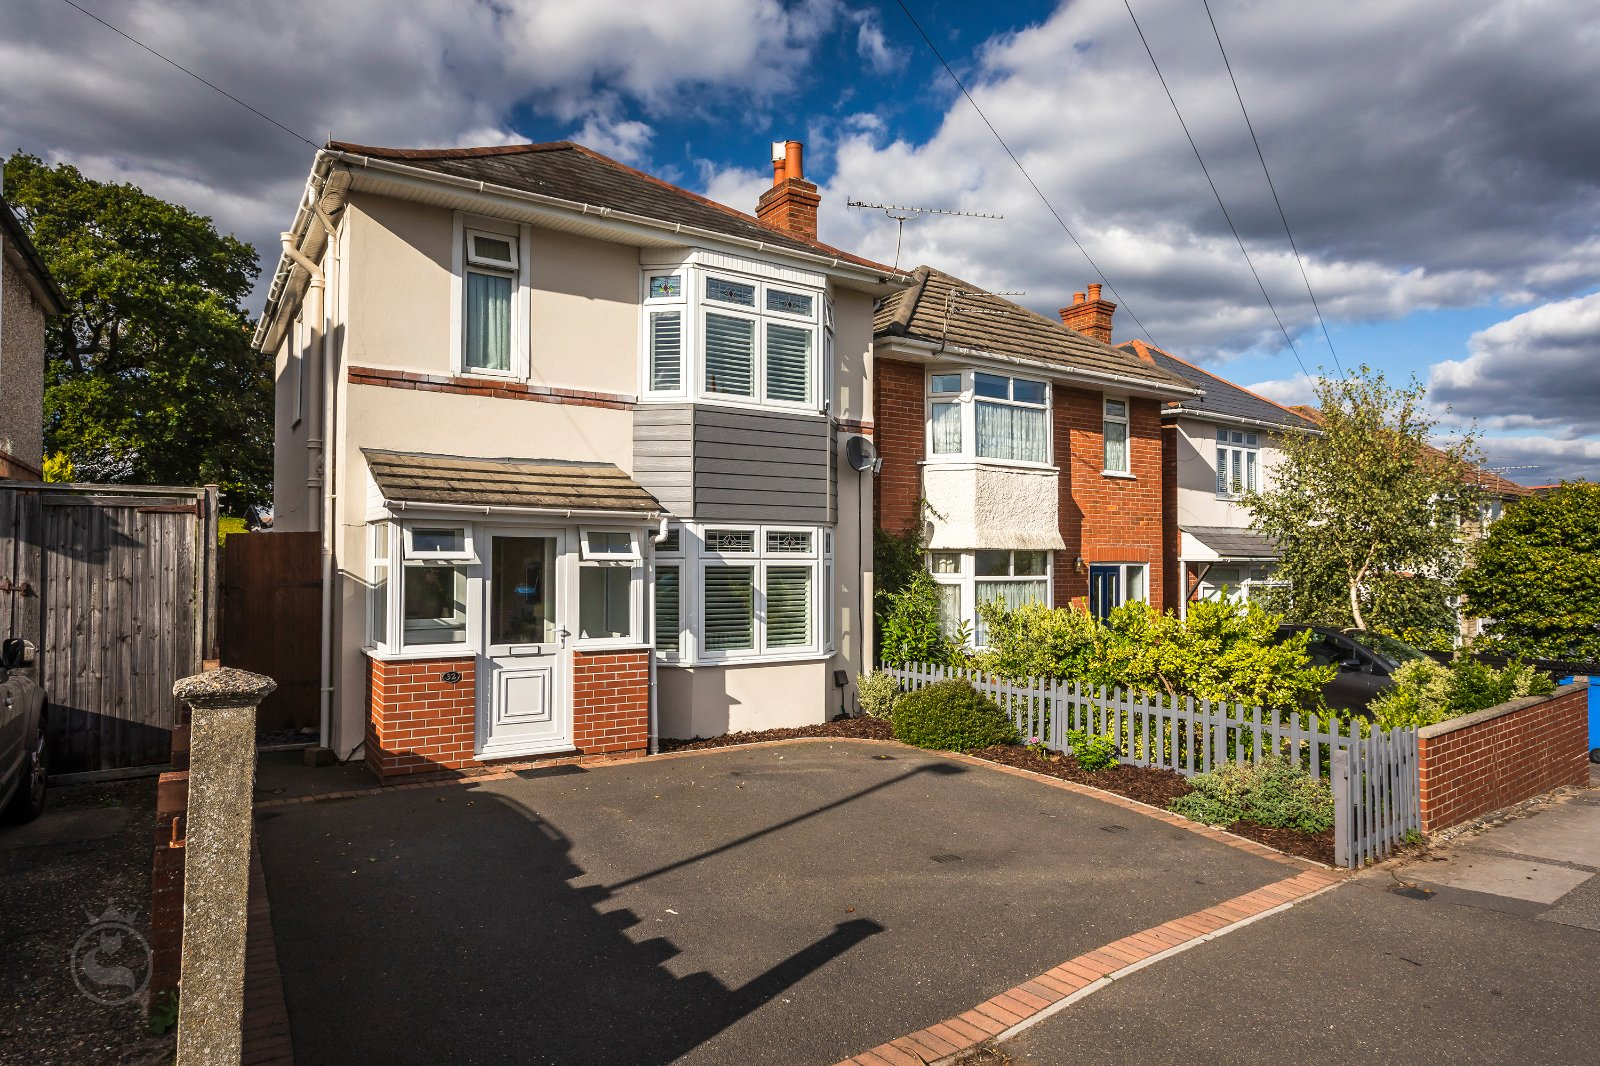 3 bed house for sale in Branksome 0